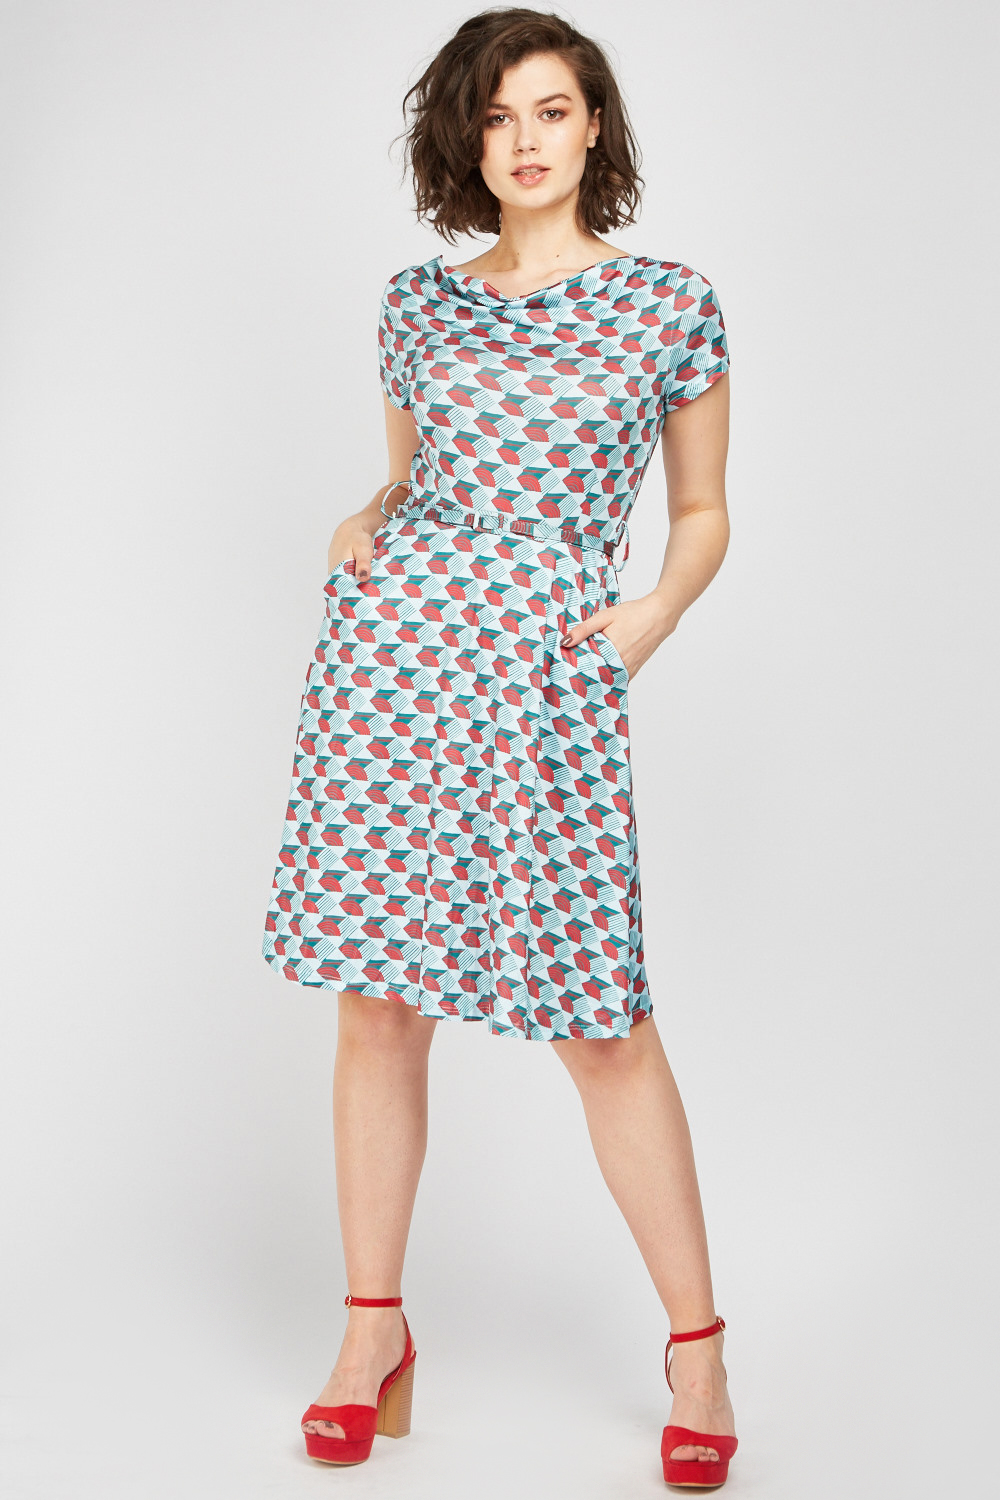 11e017e2ff331 Cowl Neck Print Swing Dress - Just £5